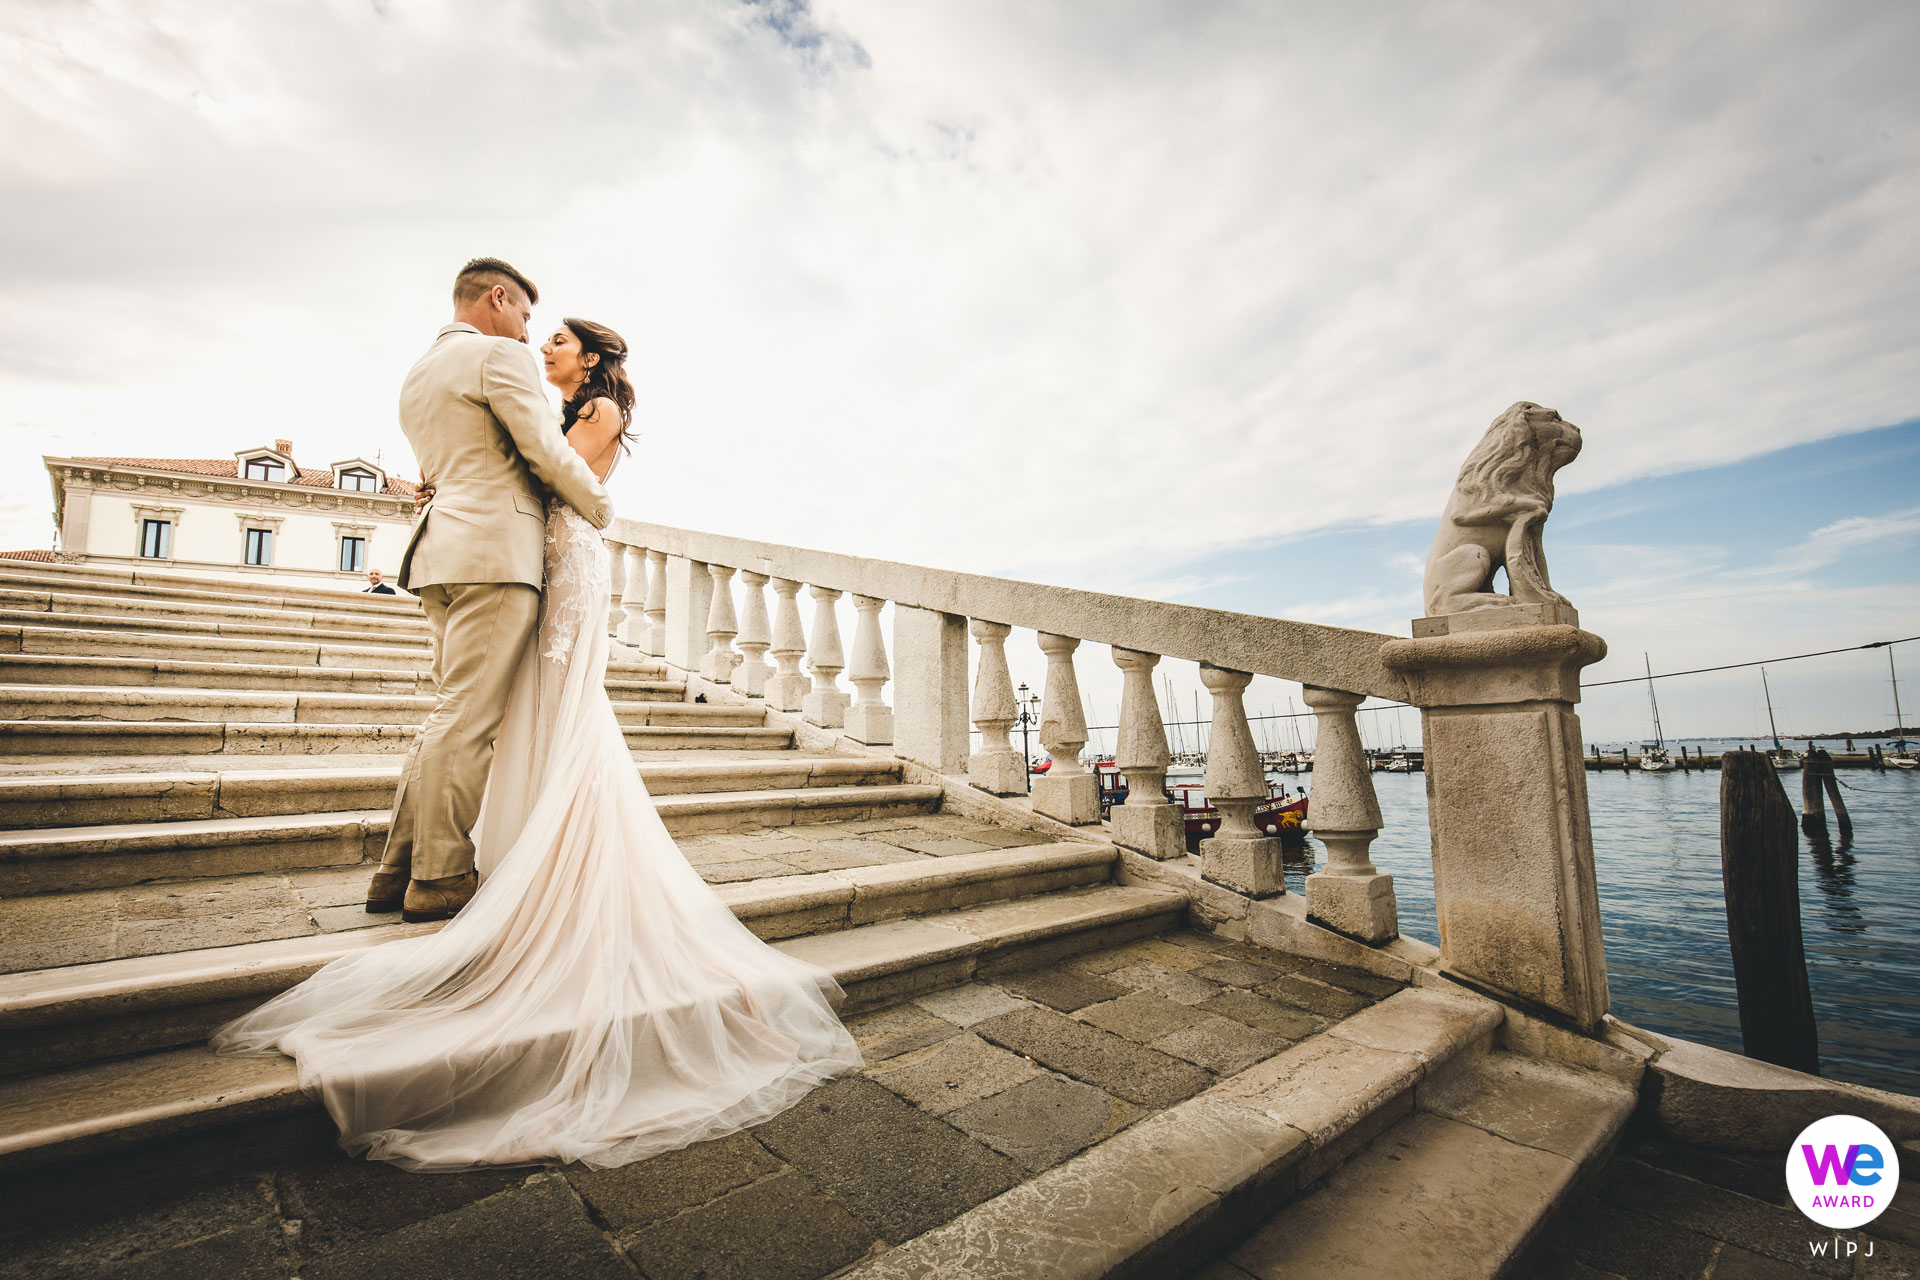 Wedding Photographer created a serene couple portrait immediately following the ceremony